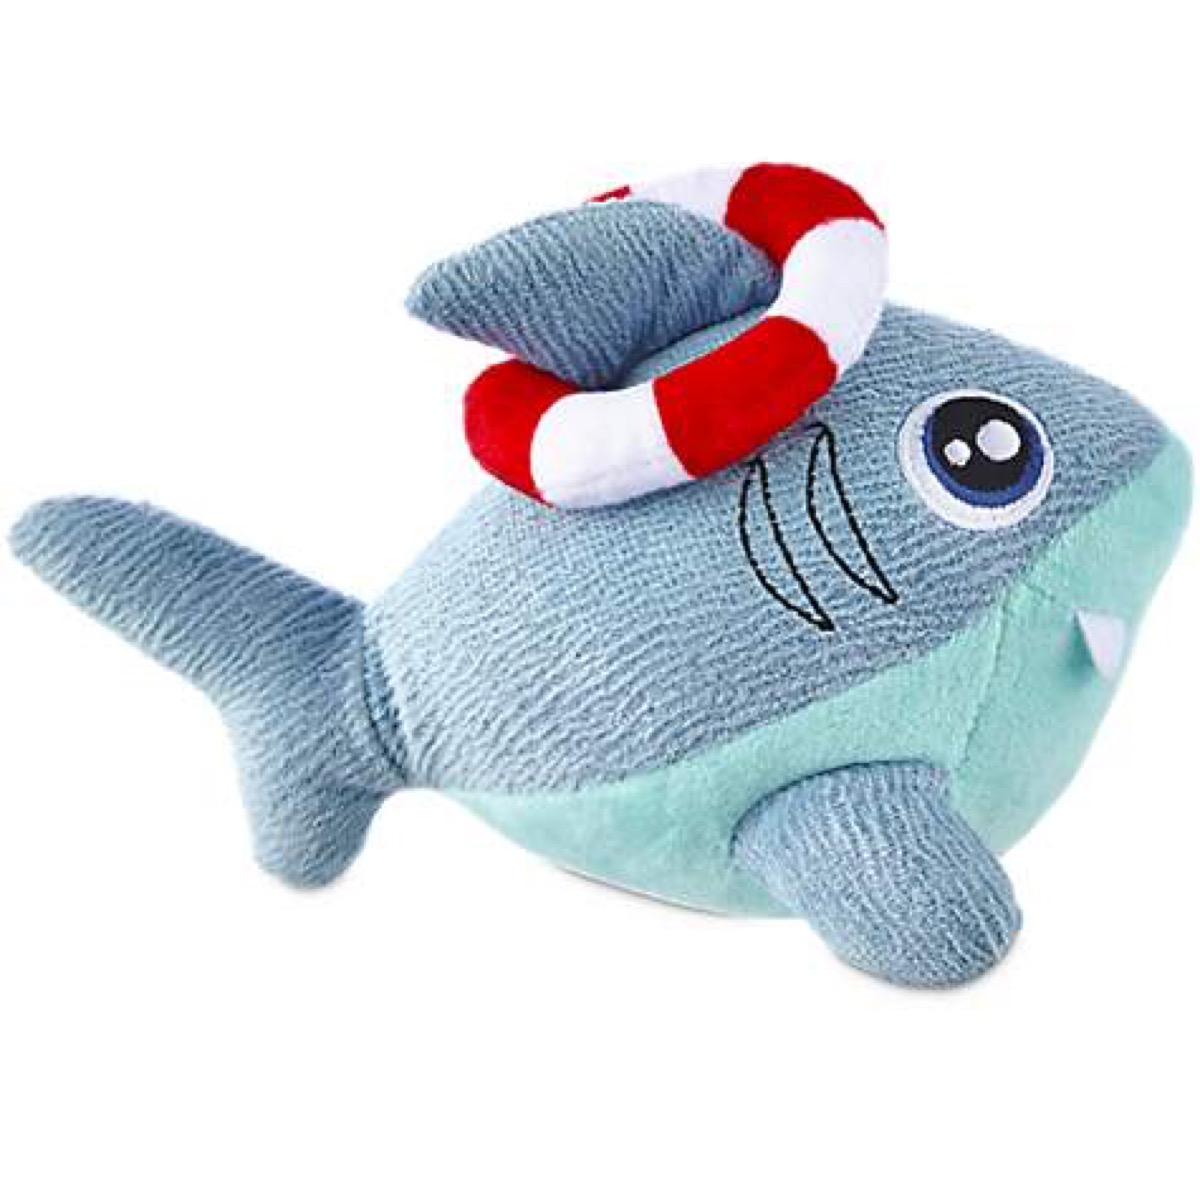 stuffed shark dog toy, best chew toys for puppies